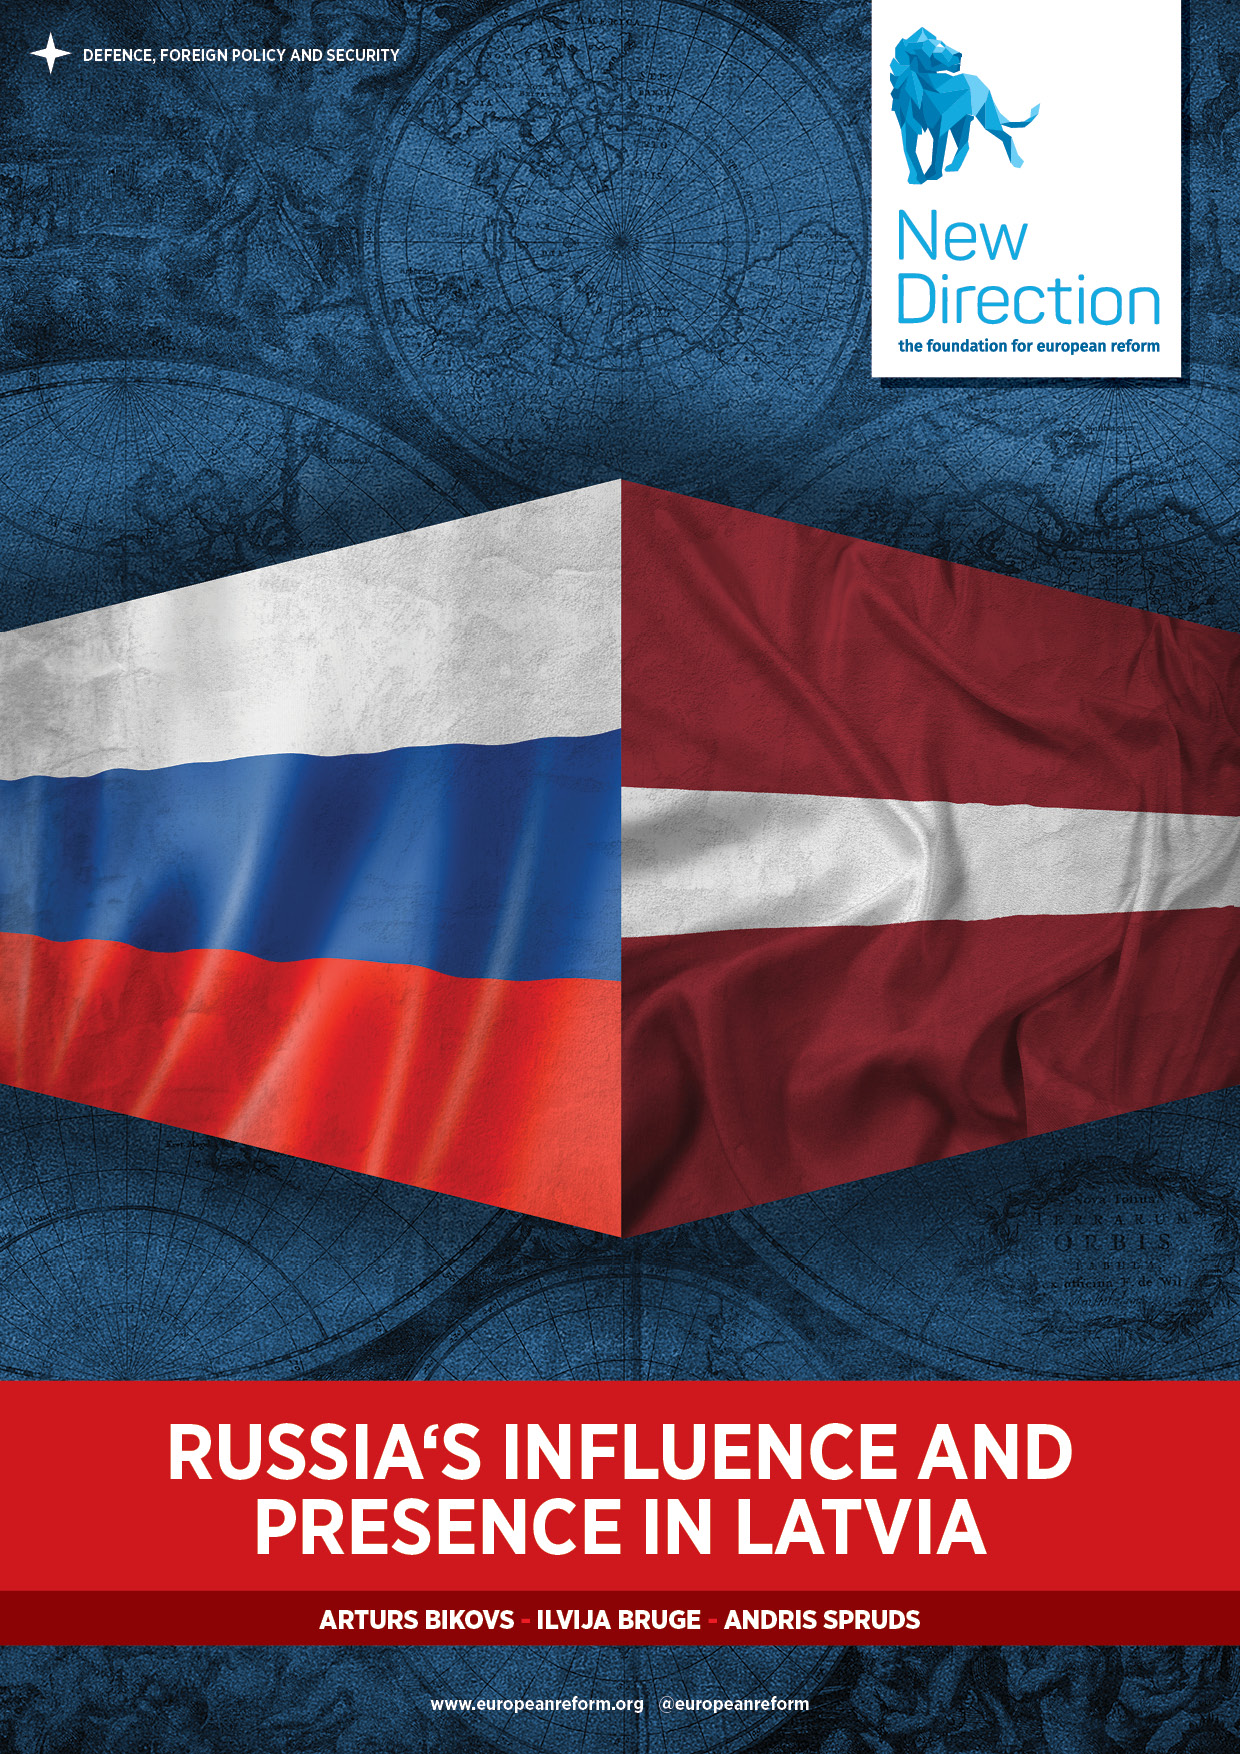 Russia's influence and presence in Latvia